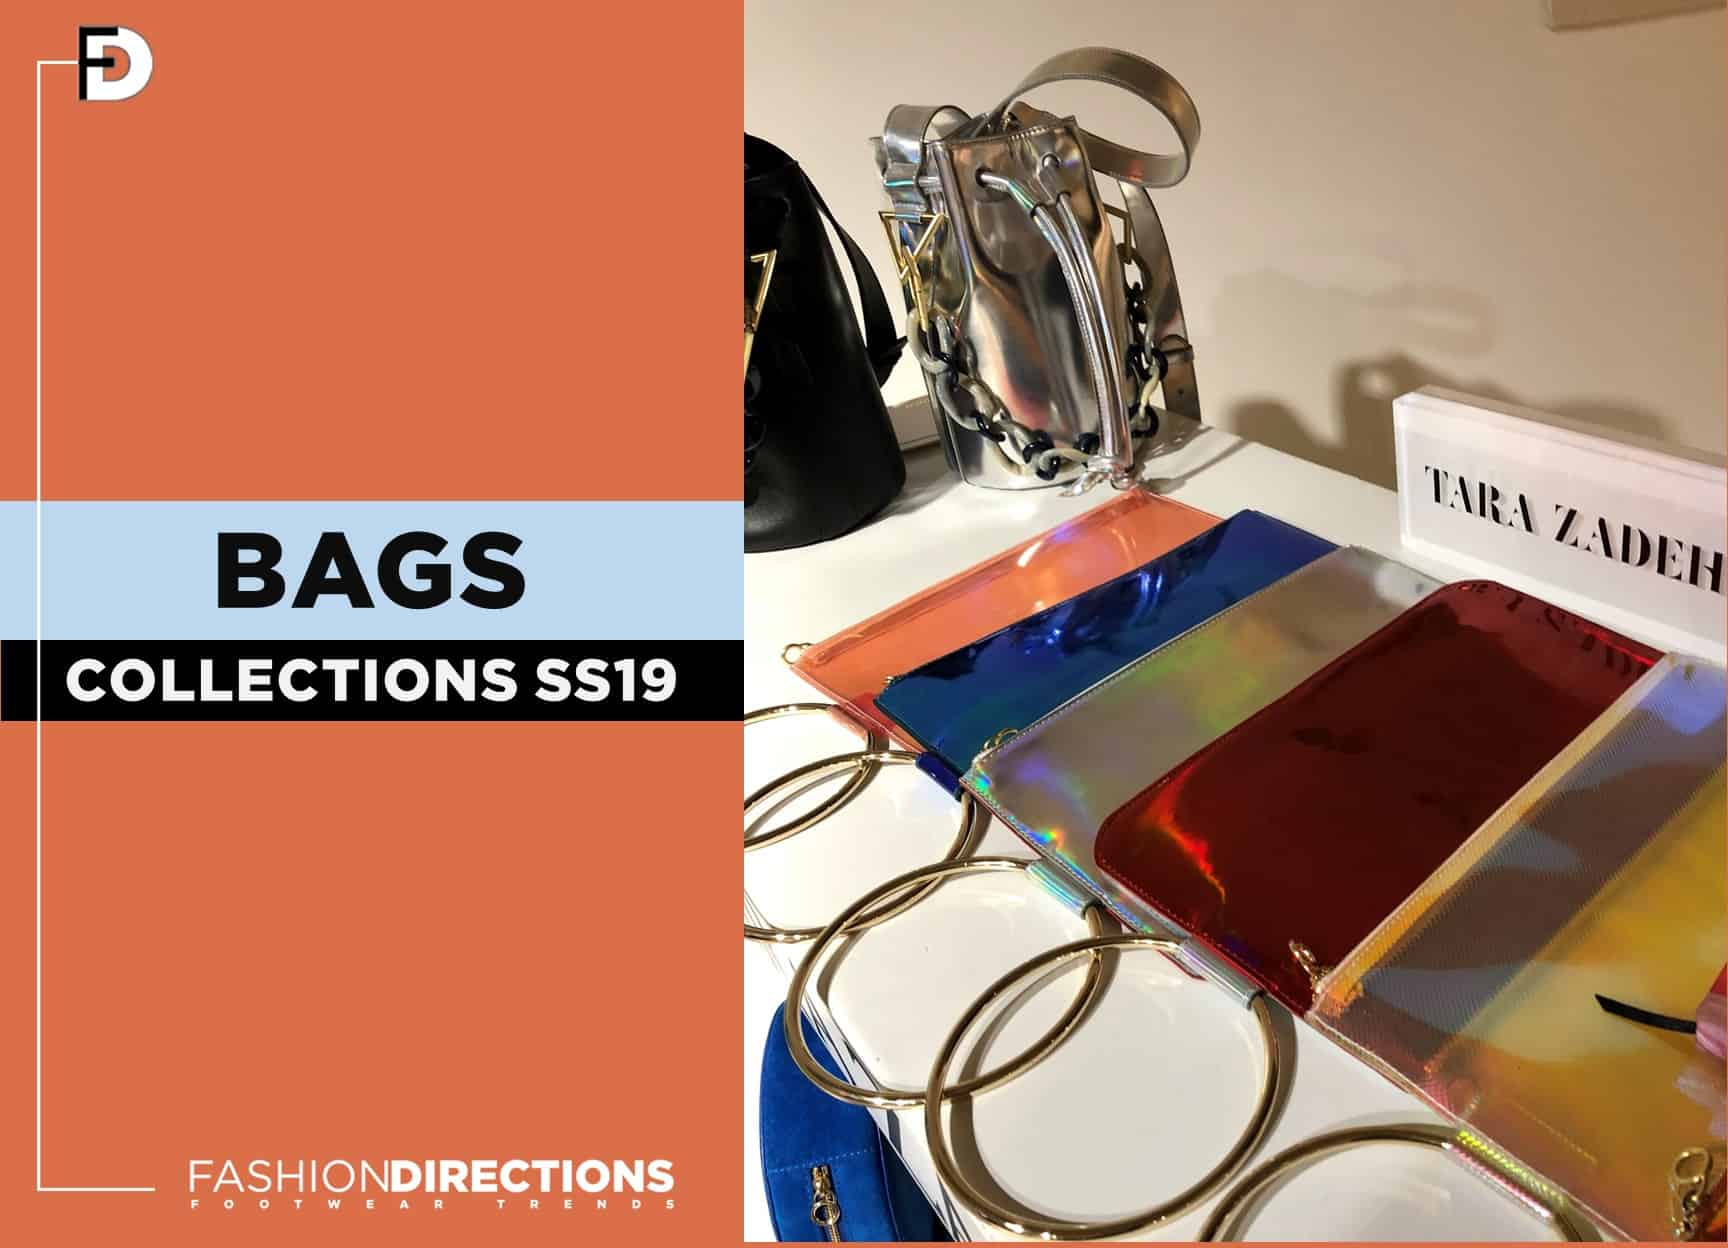 SS19 Bags Collections